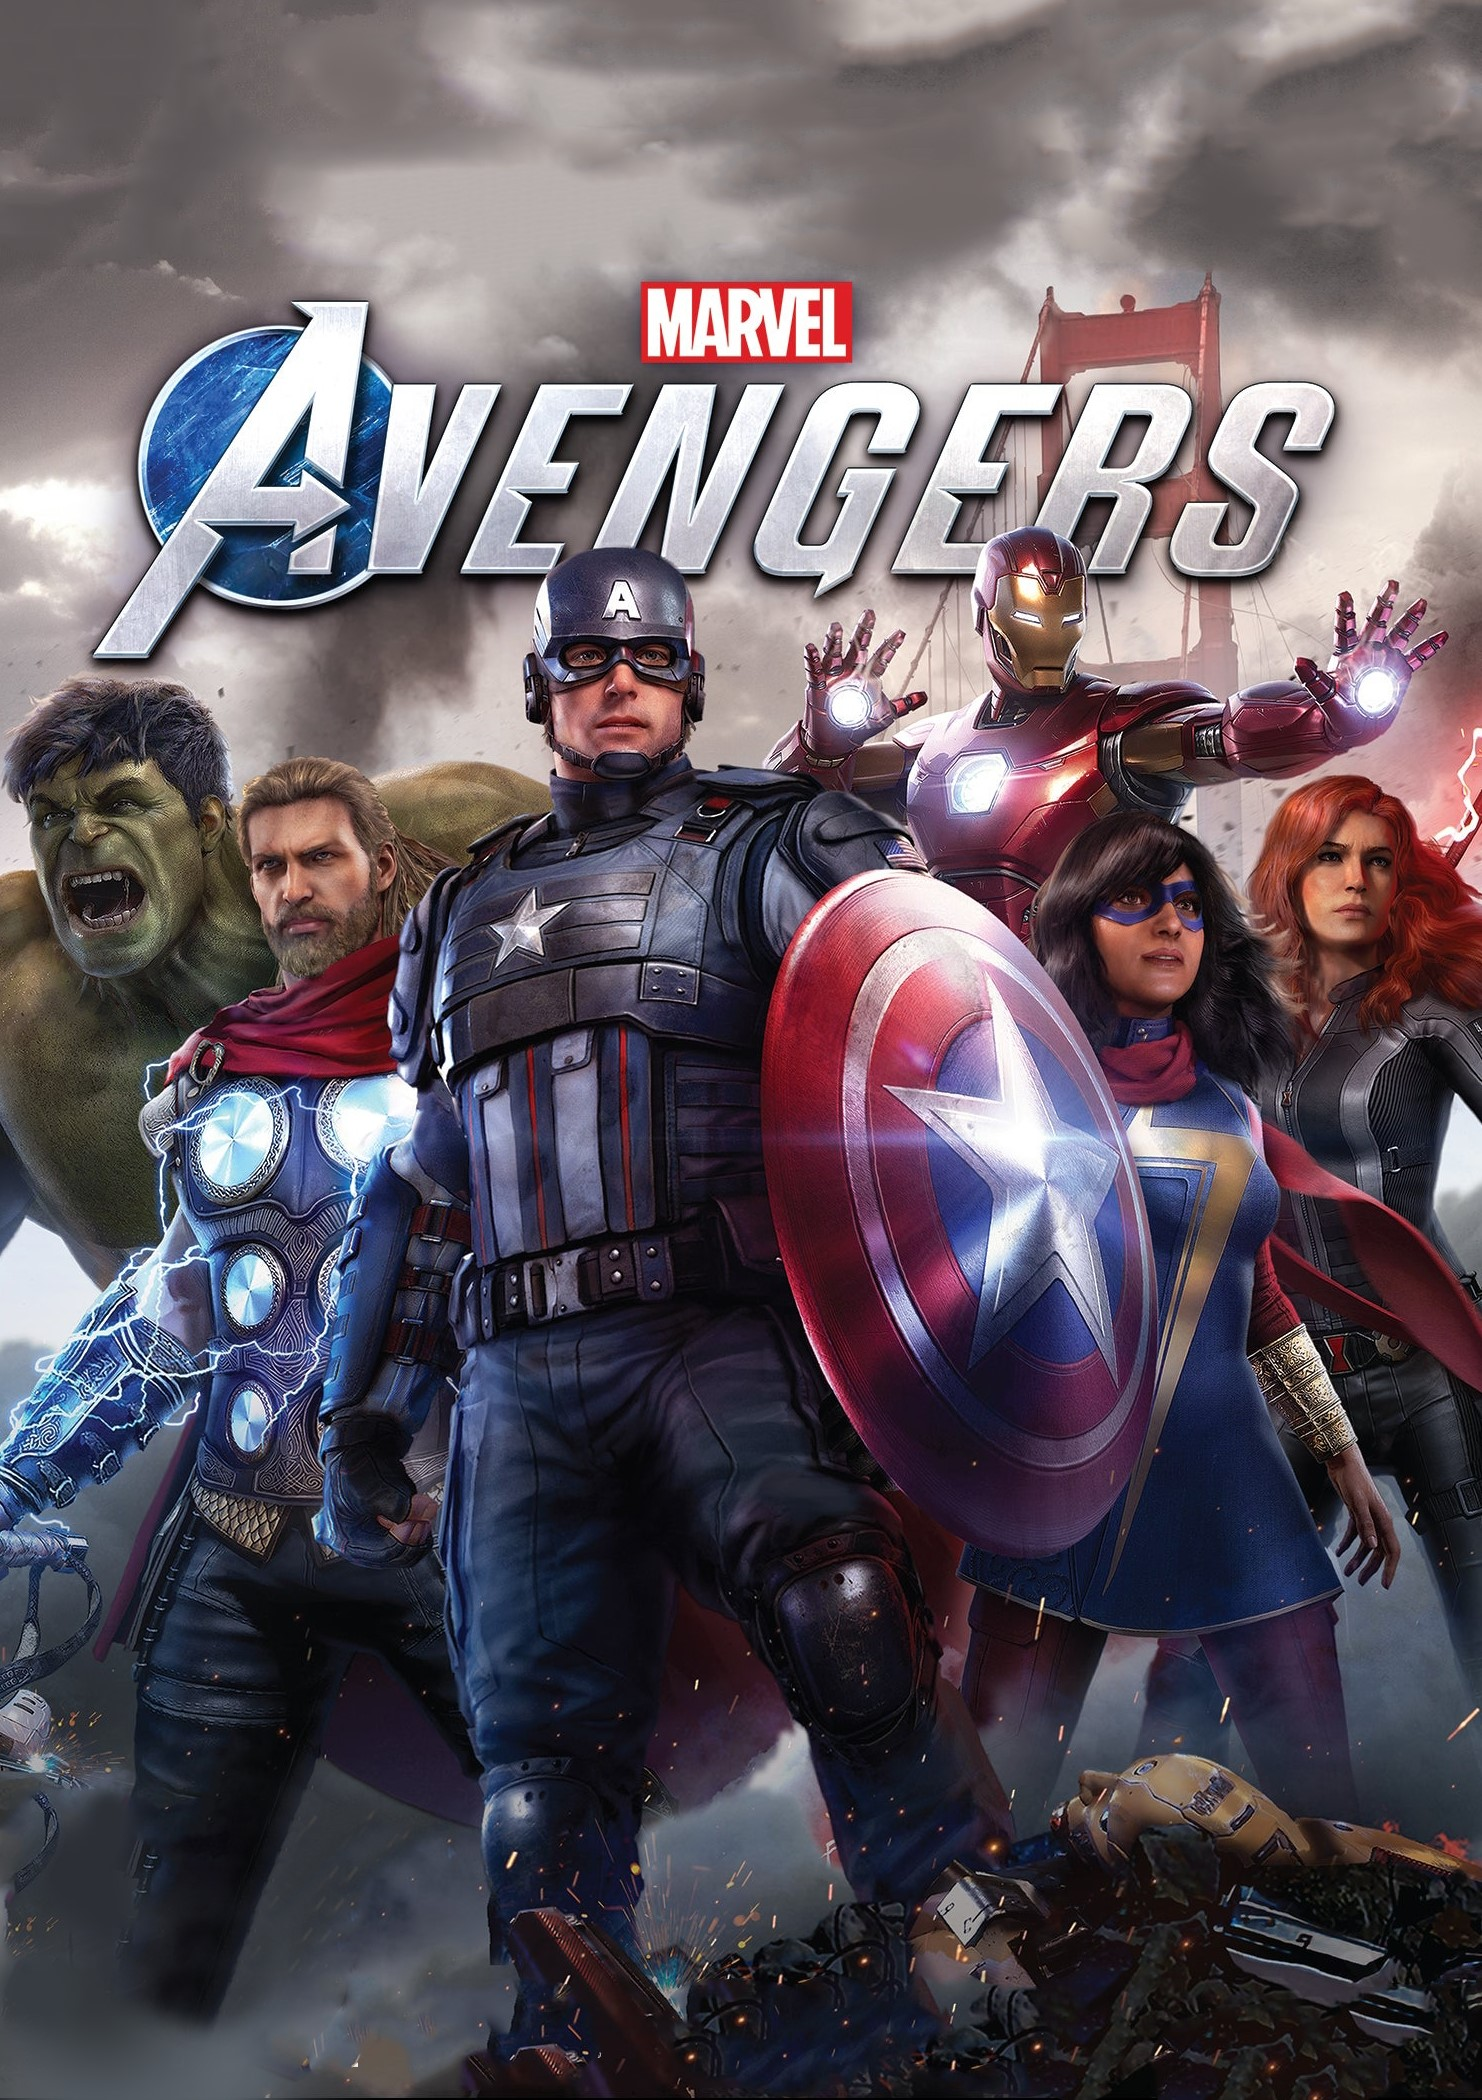 Cover Marvel's Avengers-Deluxe Edition V. 1. 3 (2020) RePack by R. G. Mechanics PC torrent for free